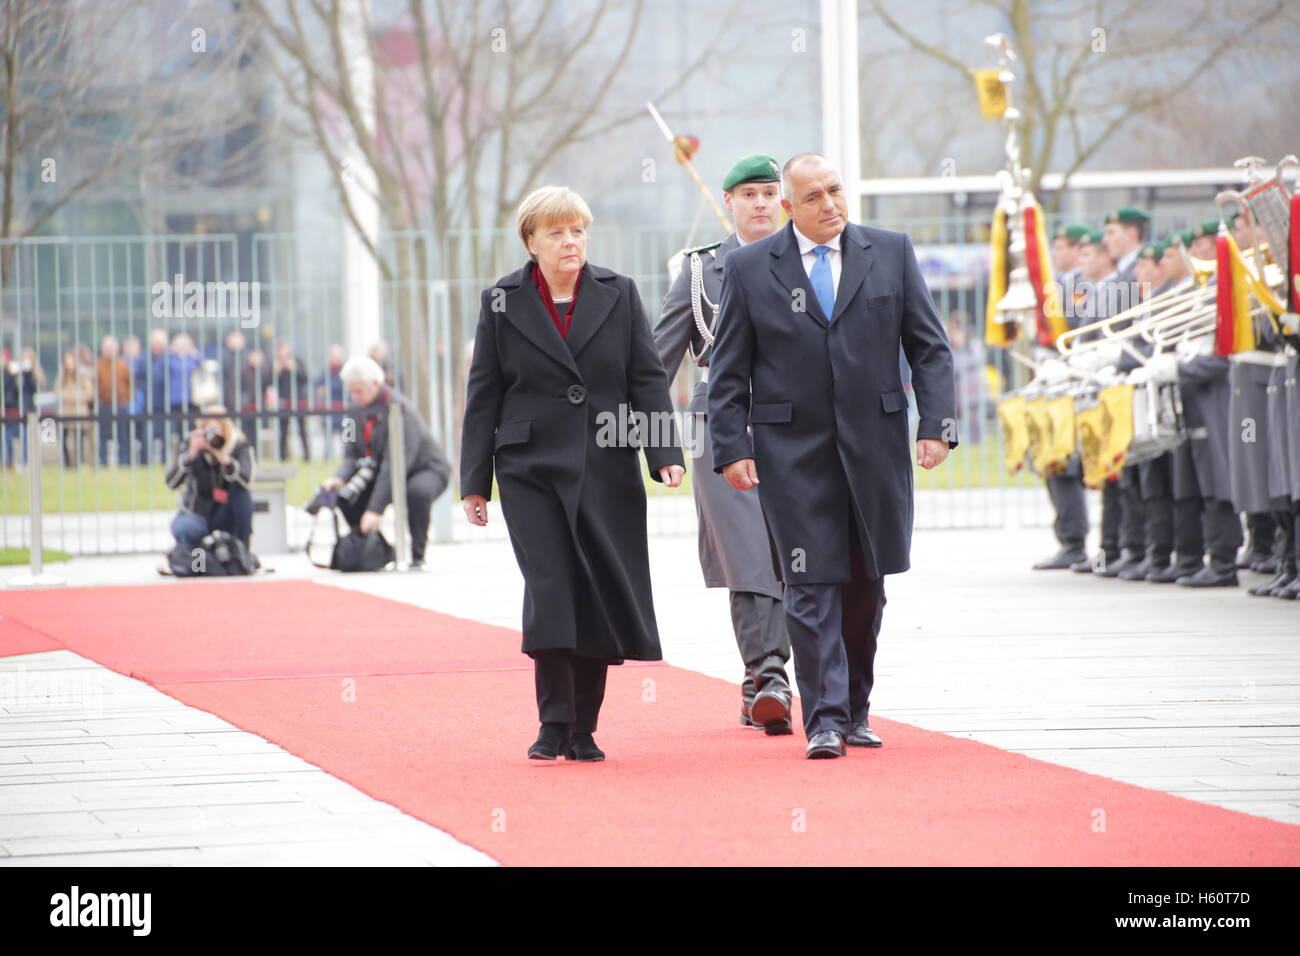 Prime Minister of Bulgaria Boyko Borisov for official visit to Chancellor Mekel, December, 15th 2014 in Berlin, - Stock Image